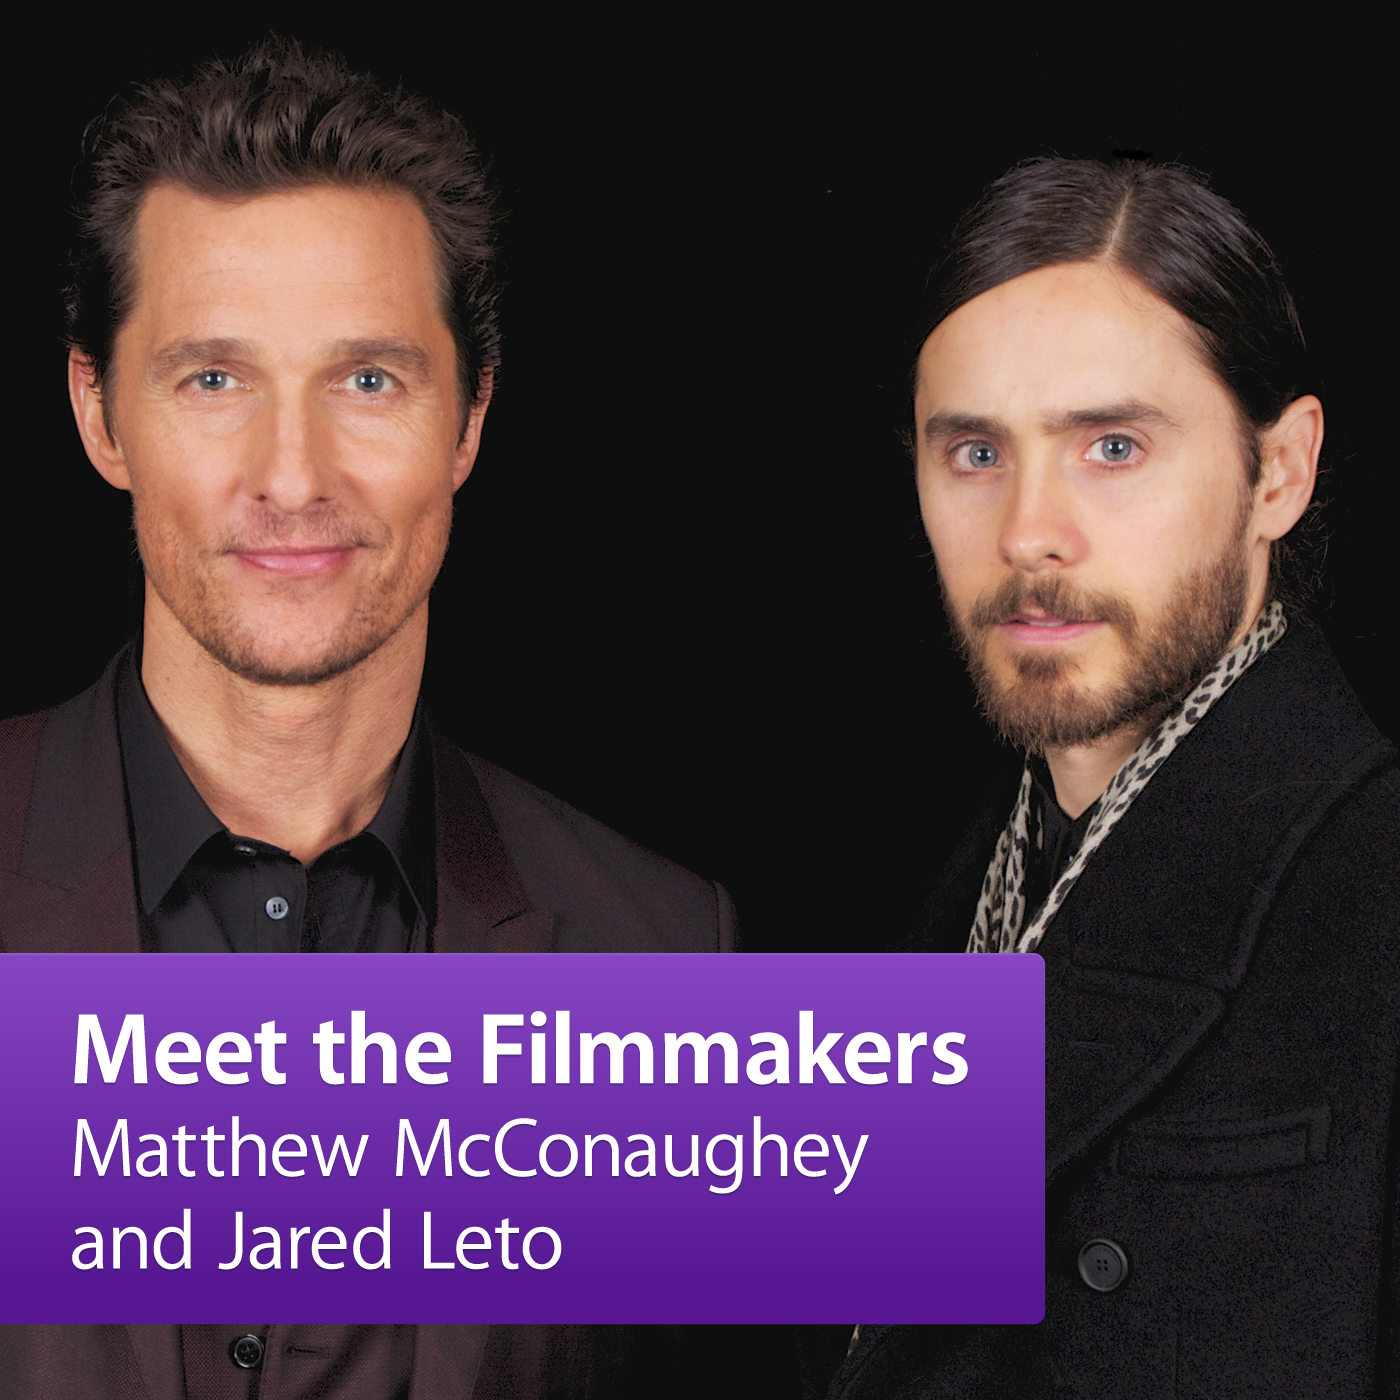 Matthew McConaughey and Jared Leto: Meet the Filmmaker